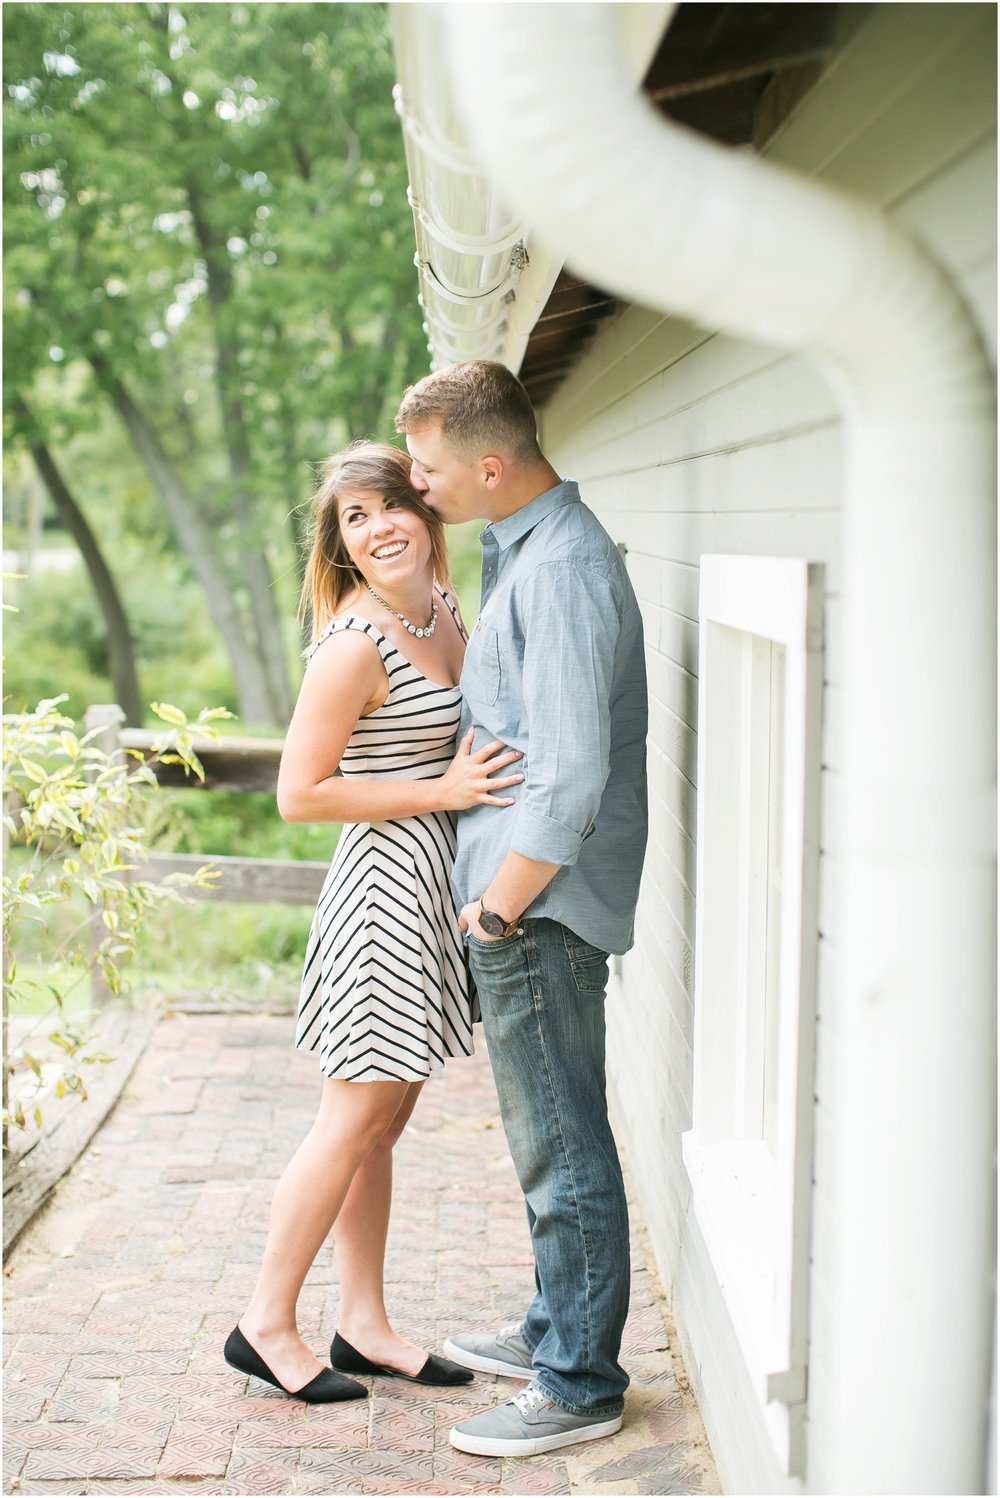 Beckman_Mill_Park_Engagement_Session_1205.jpg